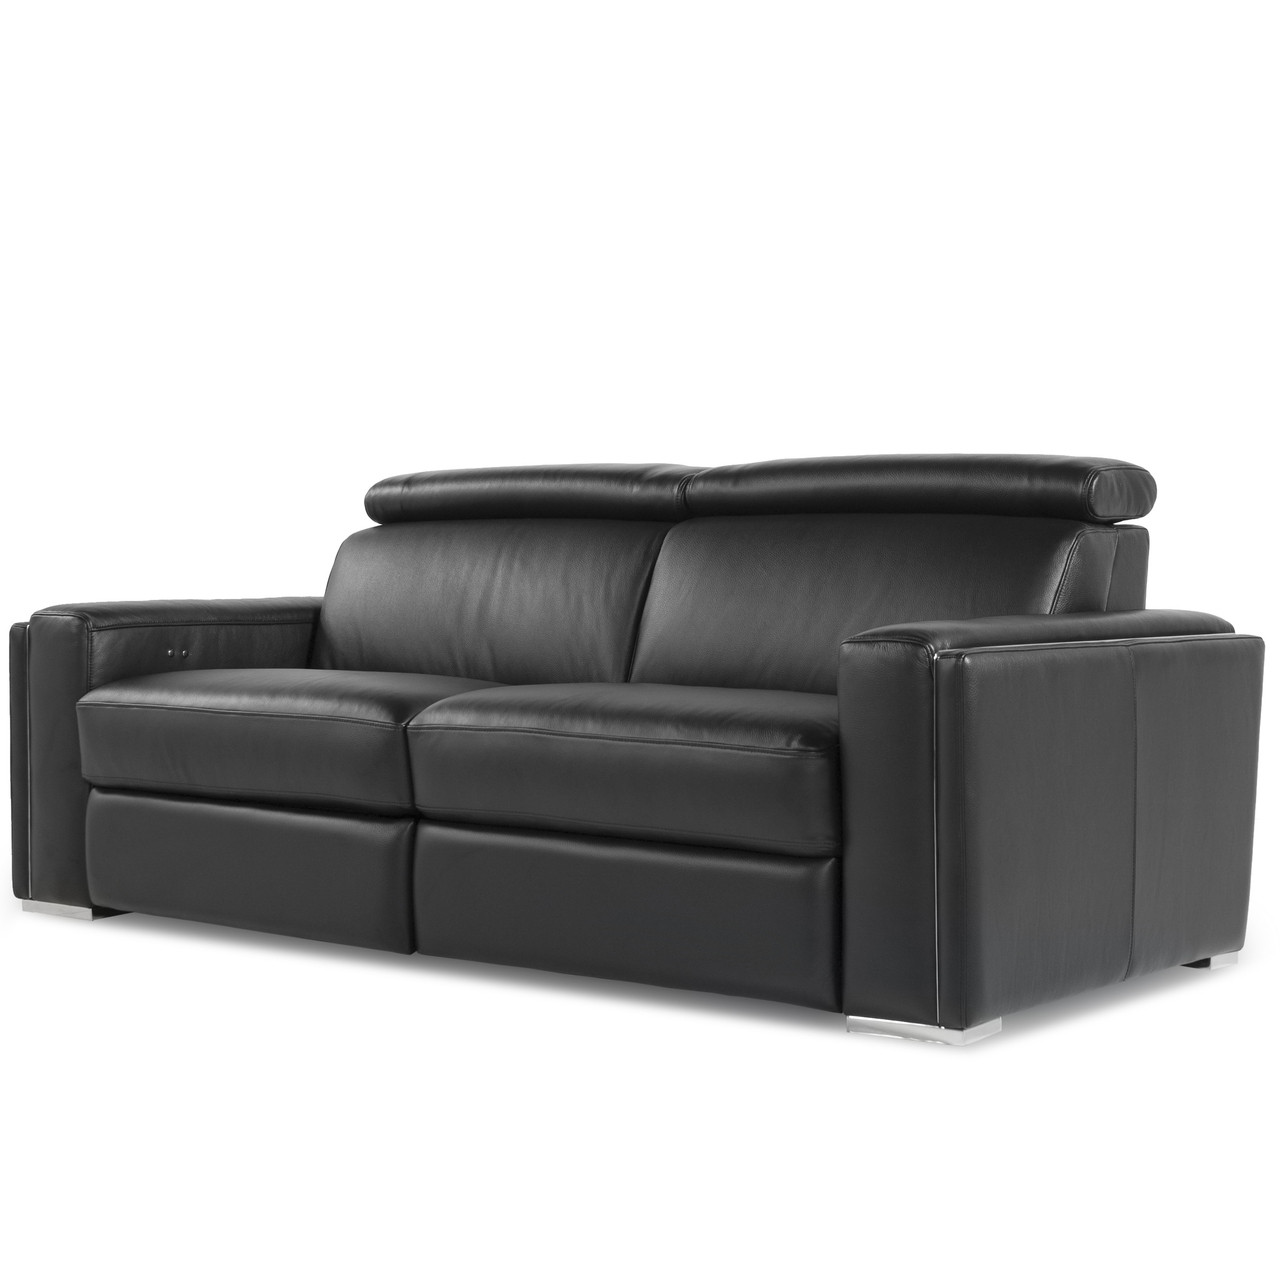 ELLIE MOTION SOFA